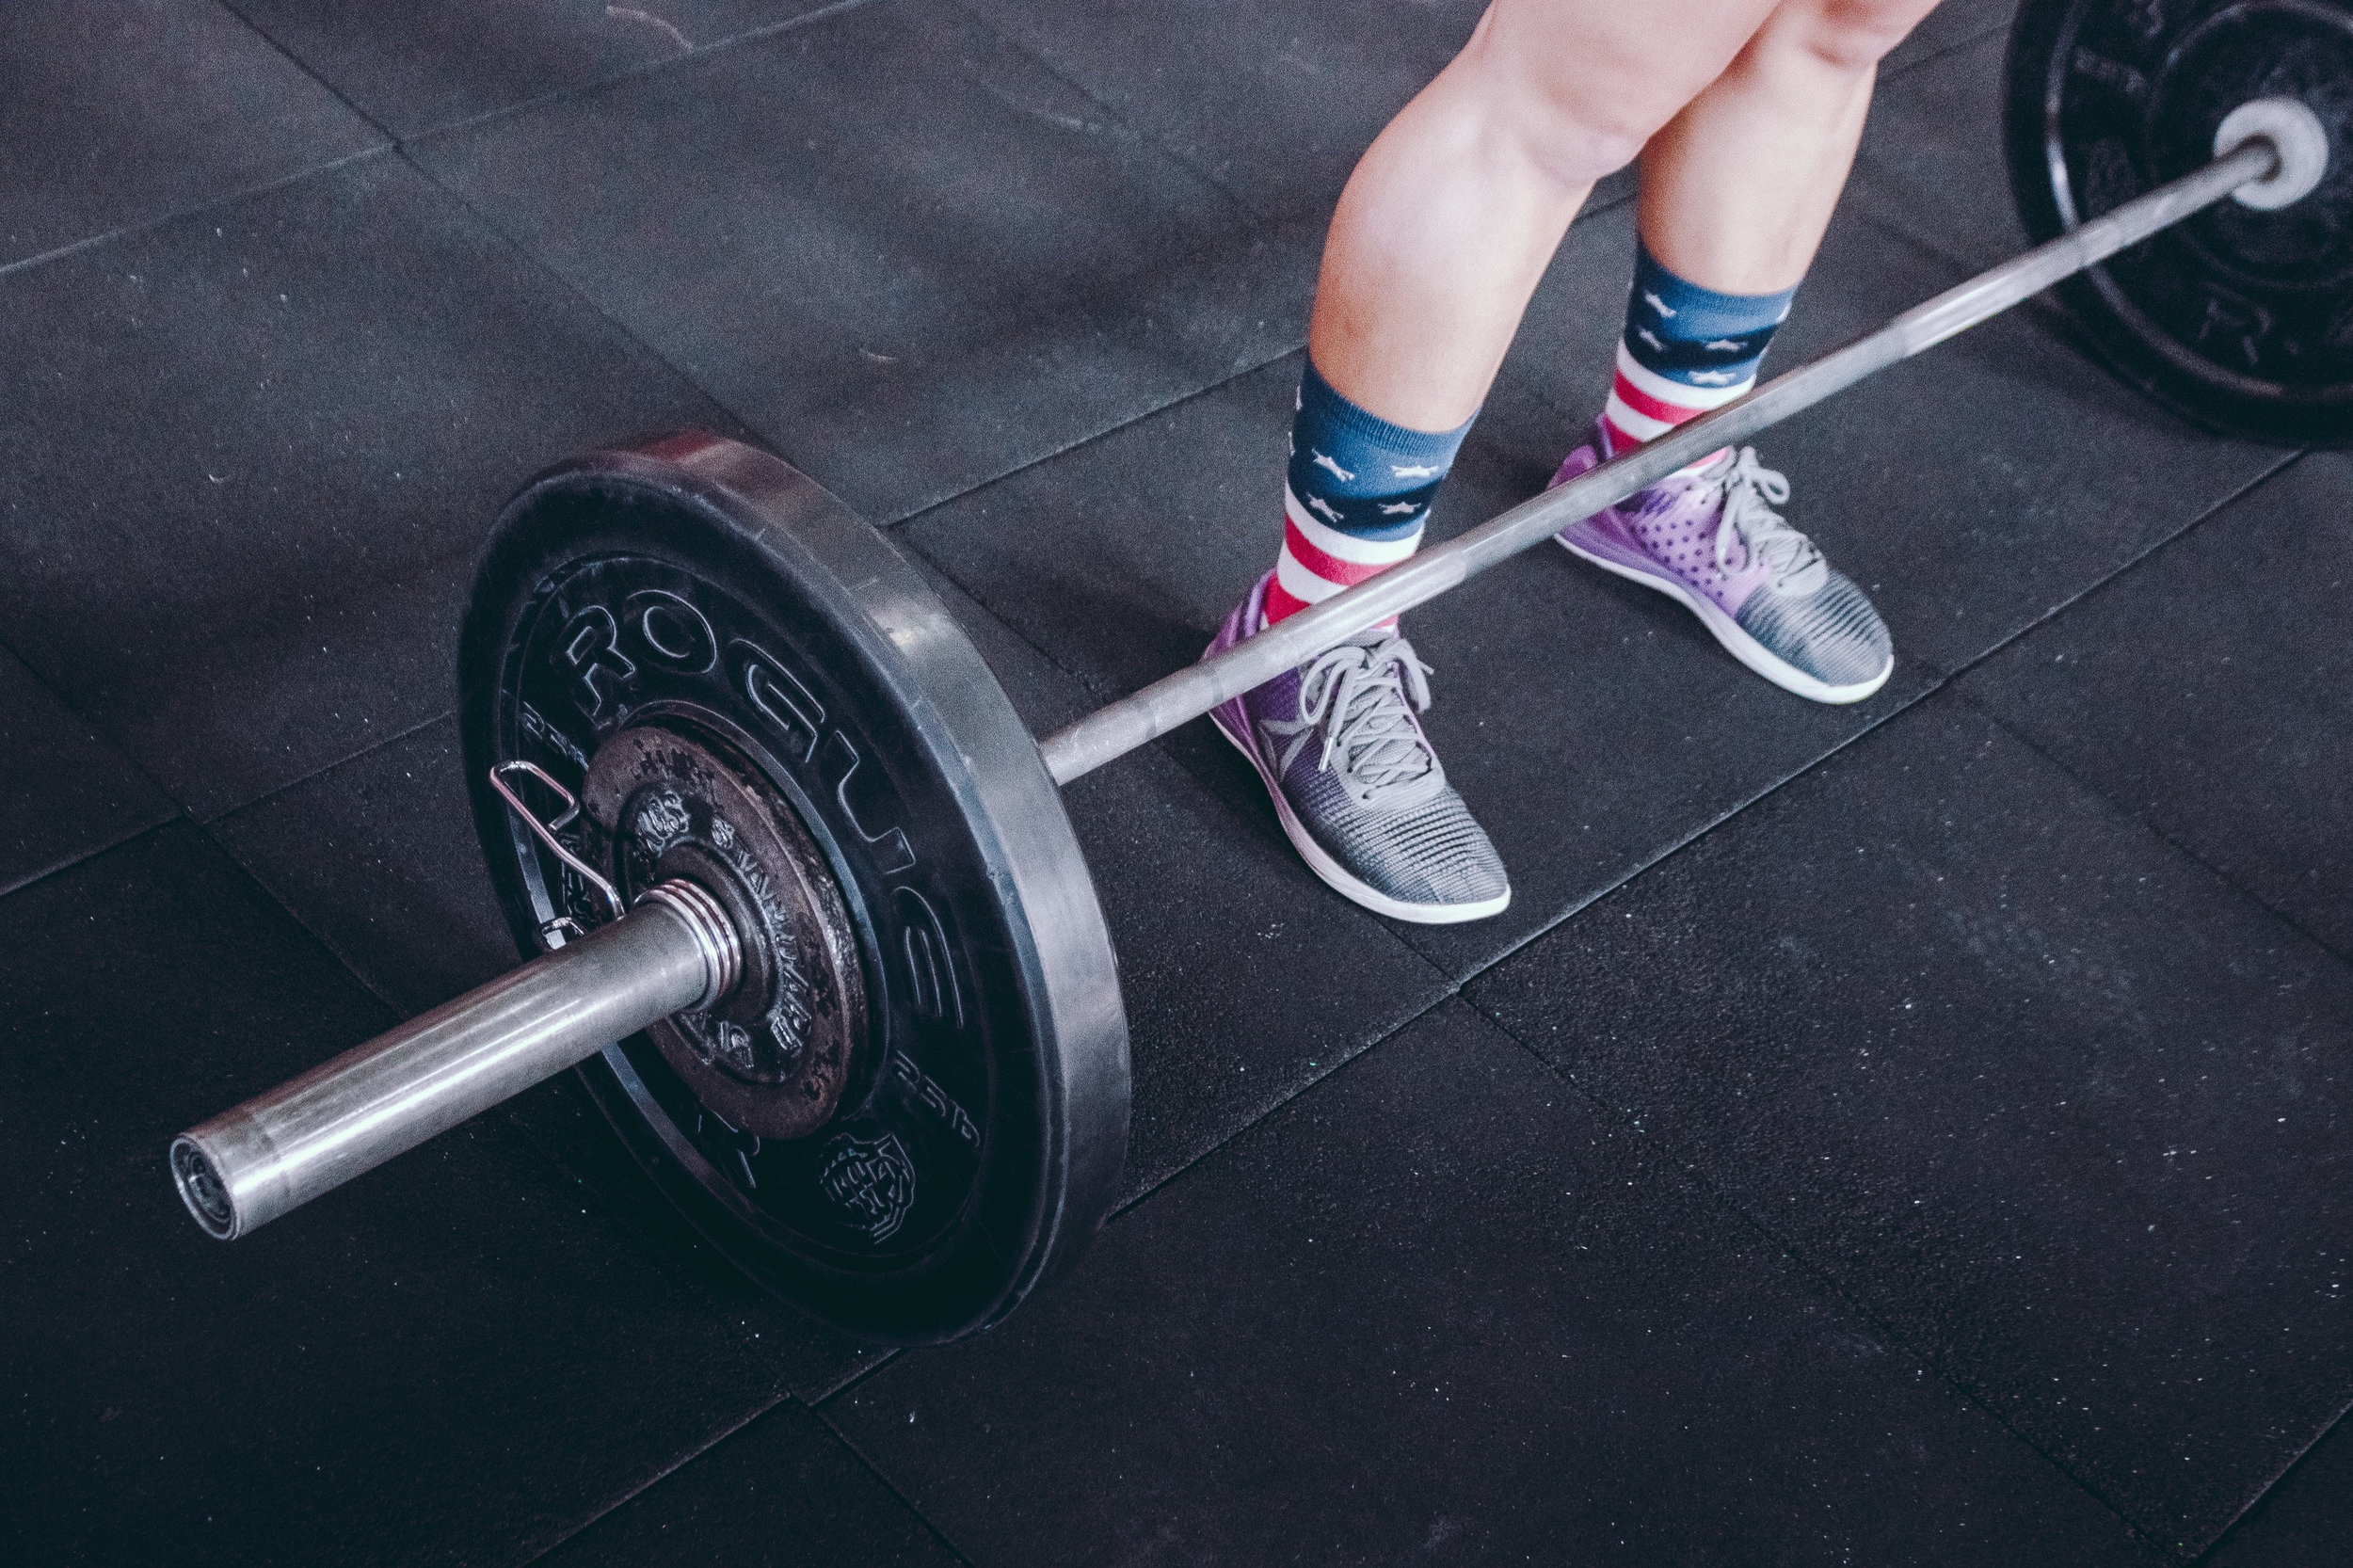 large barbell resting on the floor